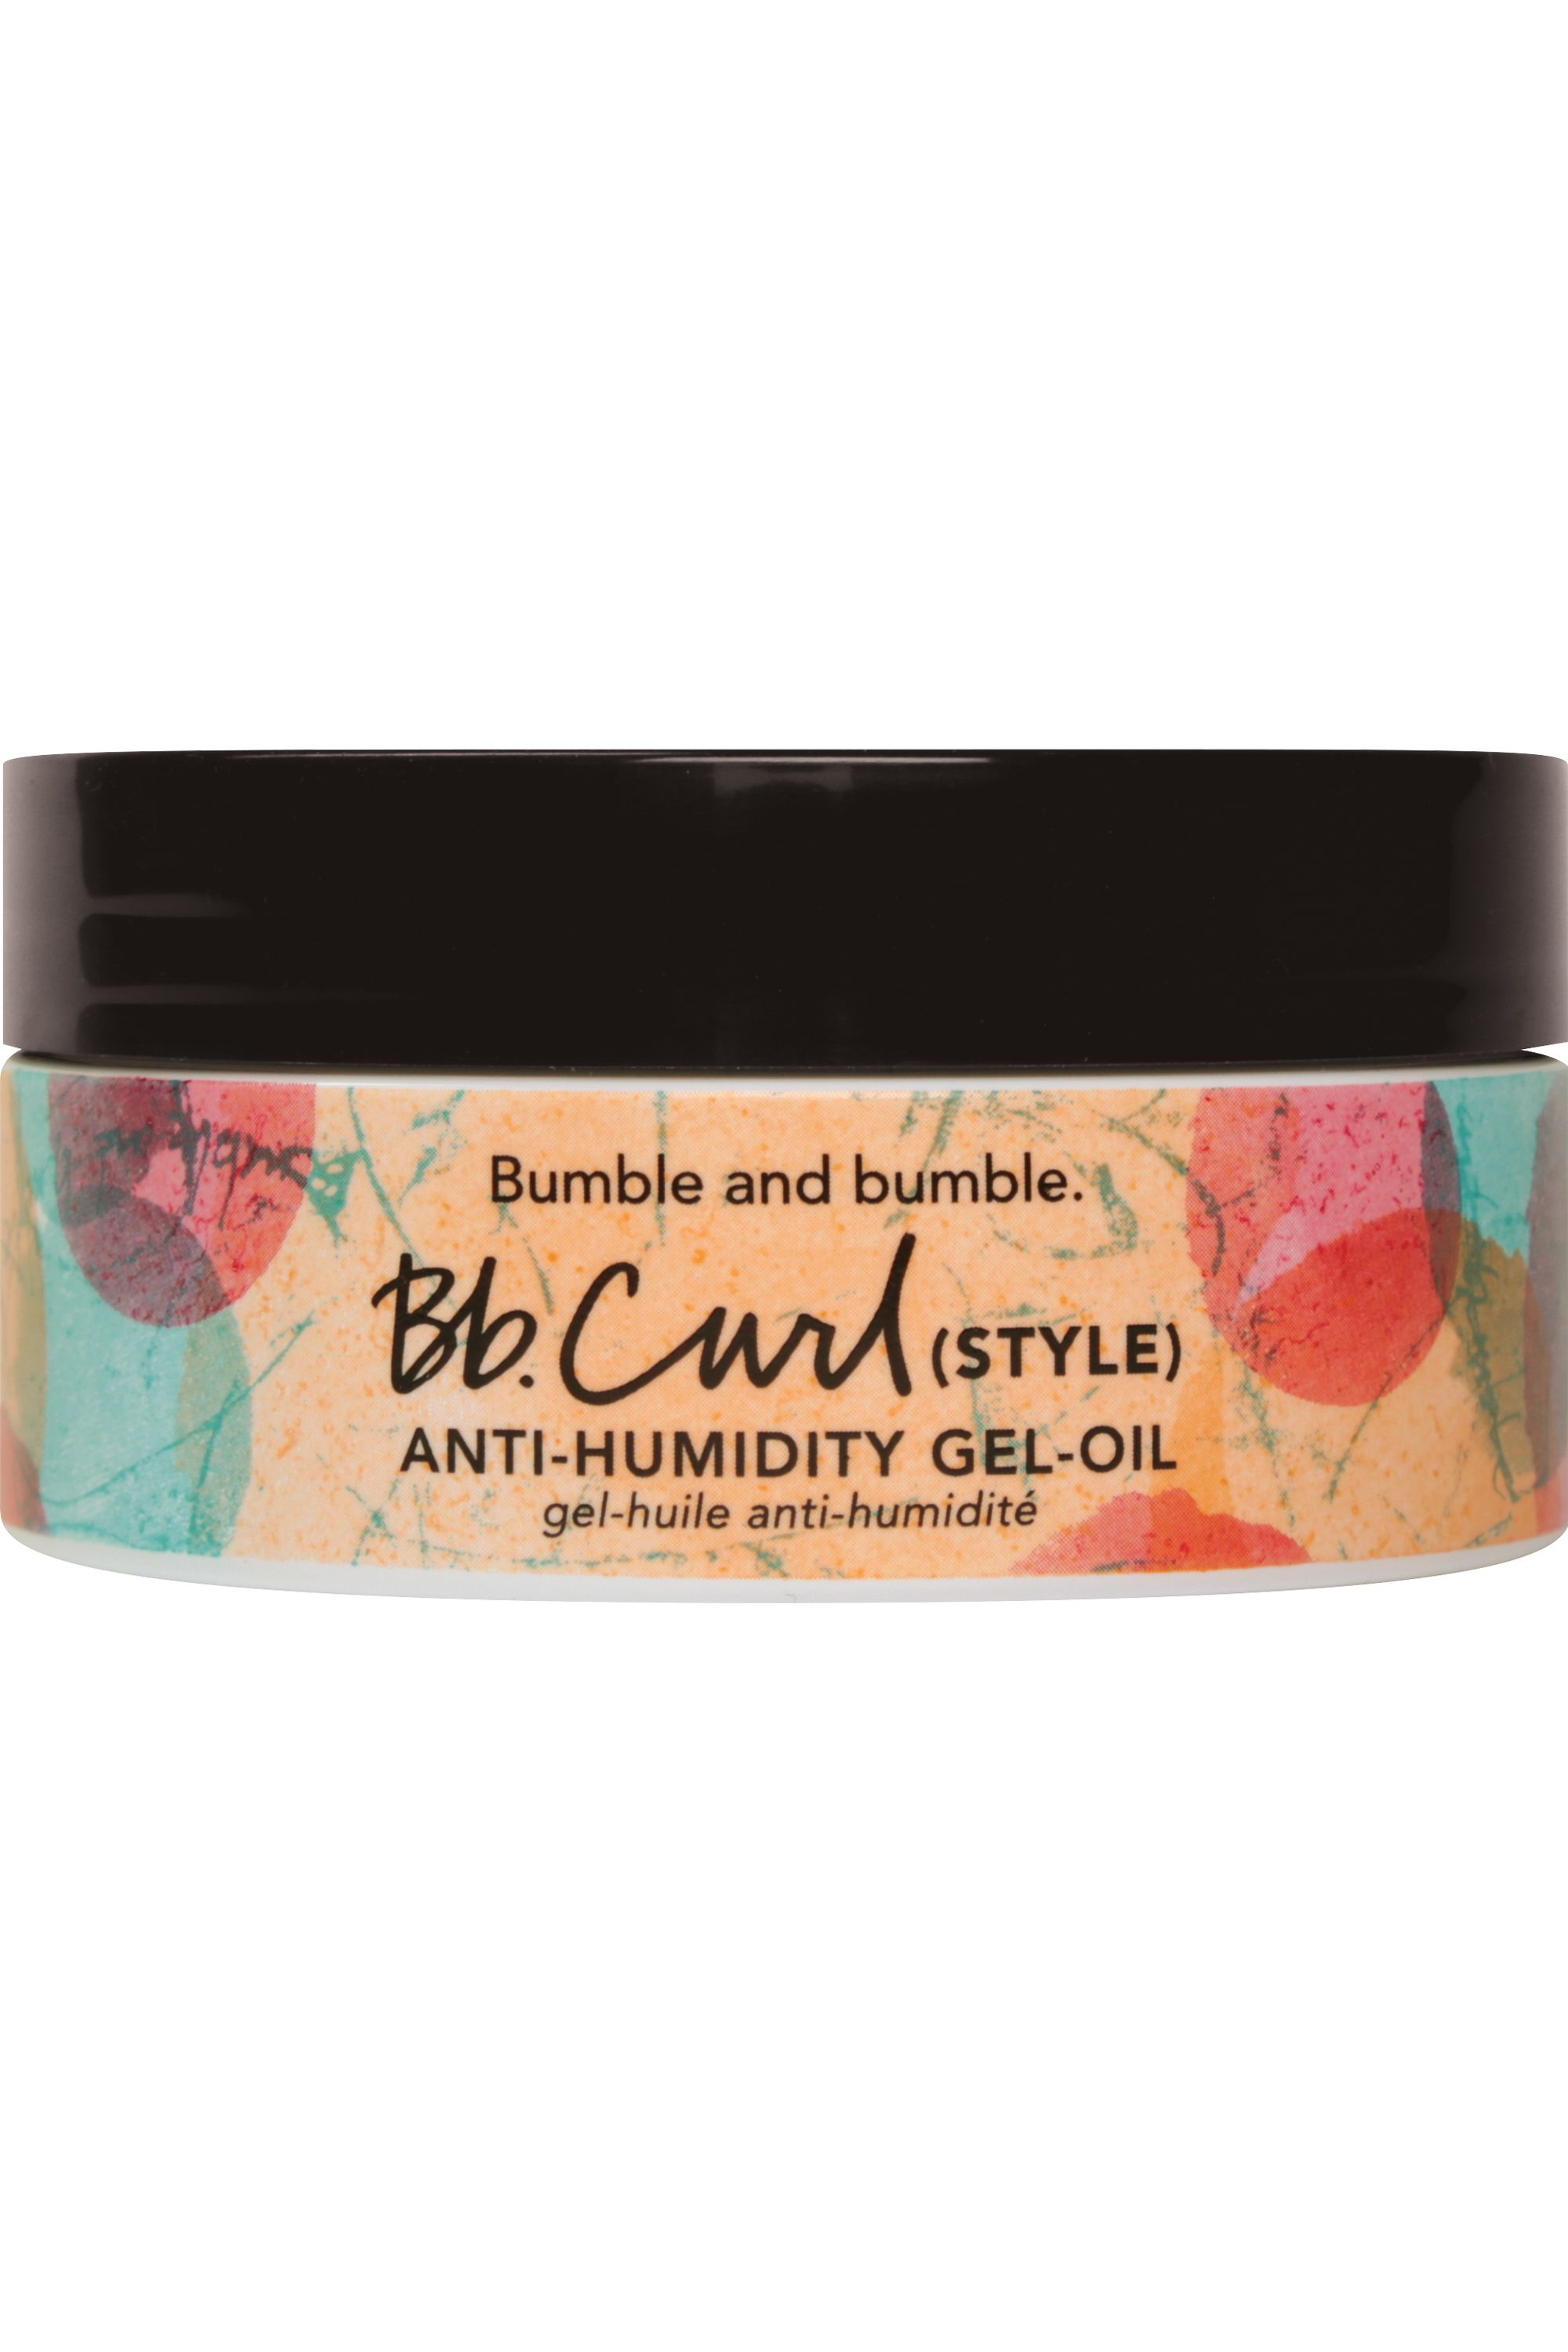 Blissim : Bumble and bumble. - Huile gel anti-humidité Bb.Curl - Huile gel anti-humidité Bb.Curl